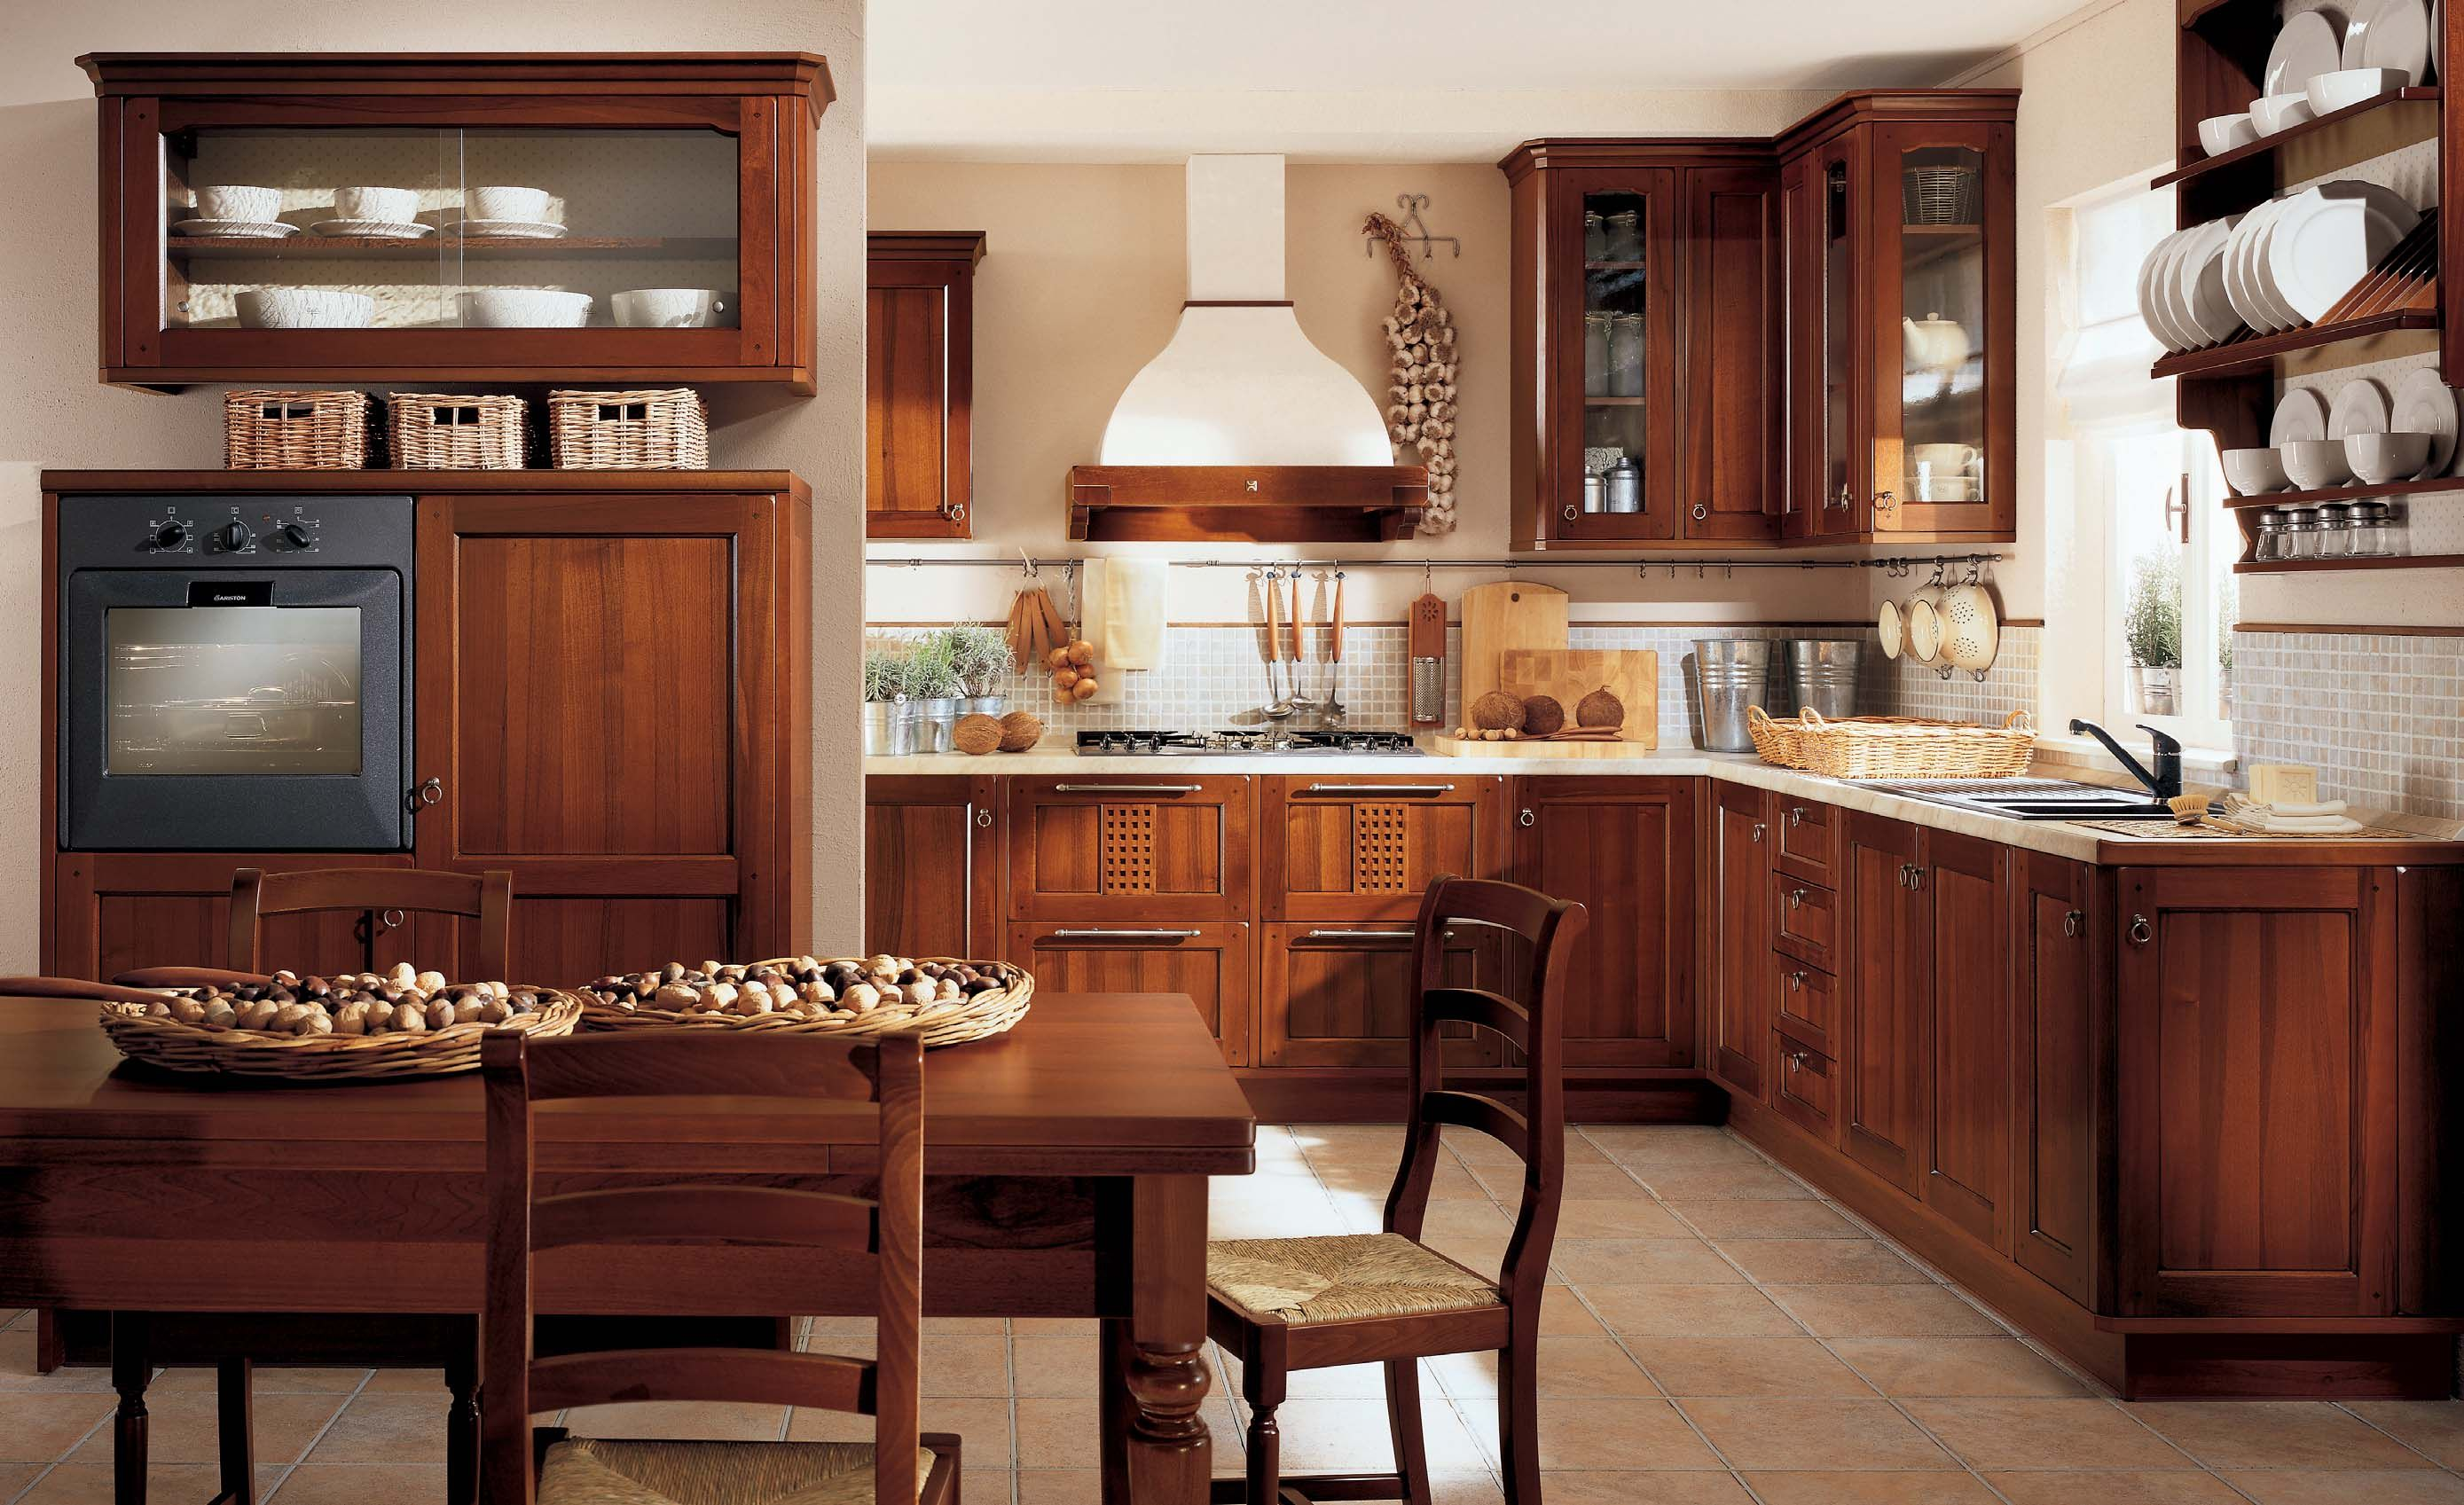 Modern Kitchen For Small Kitchens Kitchens By Design Designs From Berloni A Small Classic